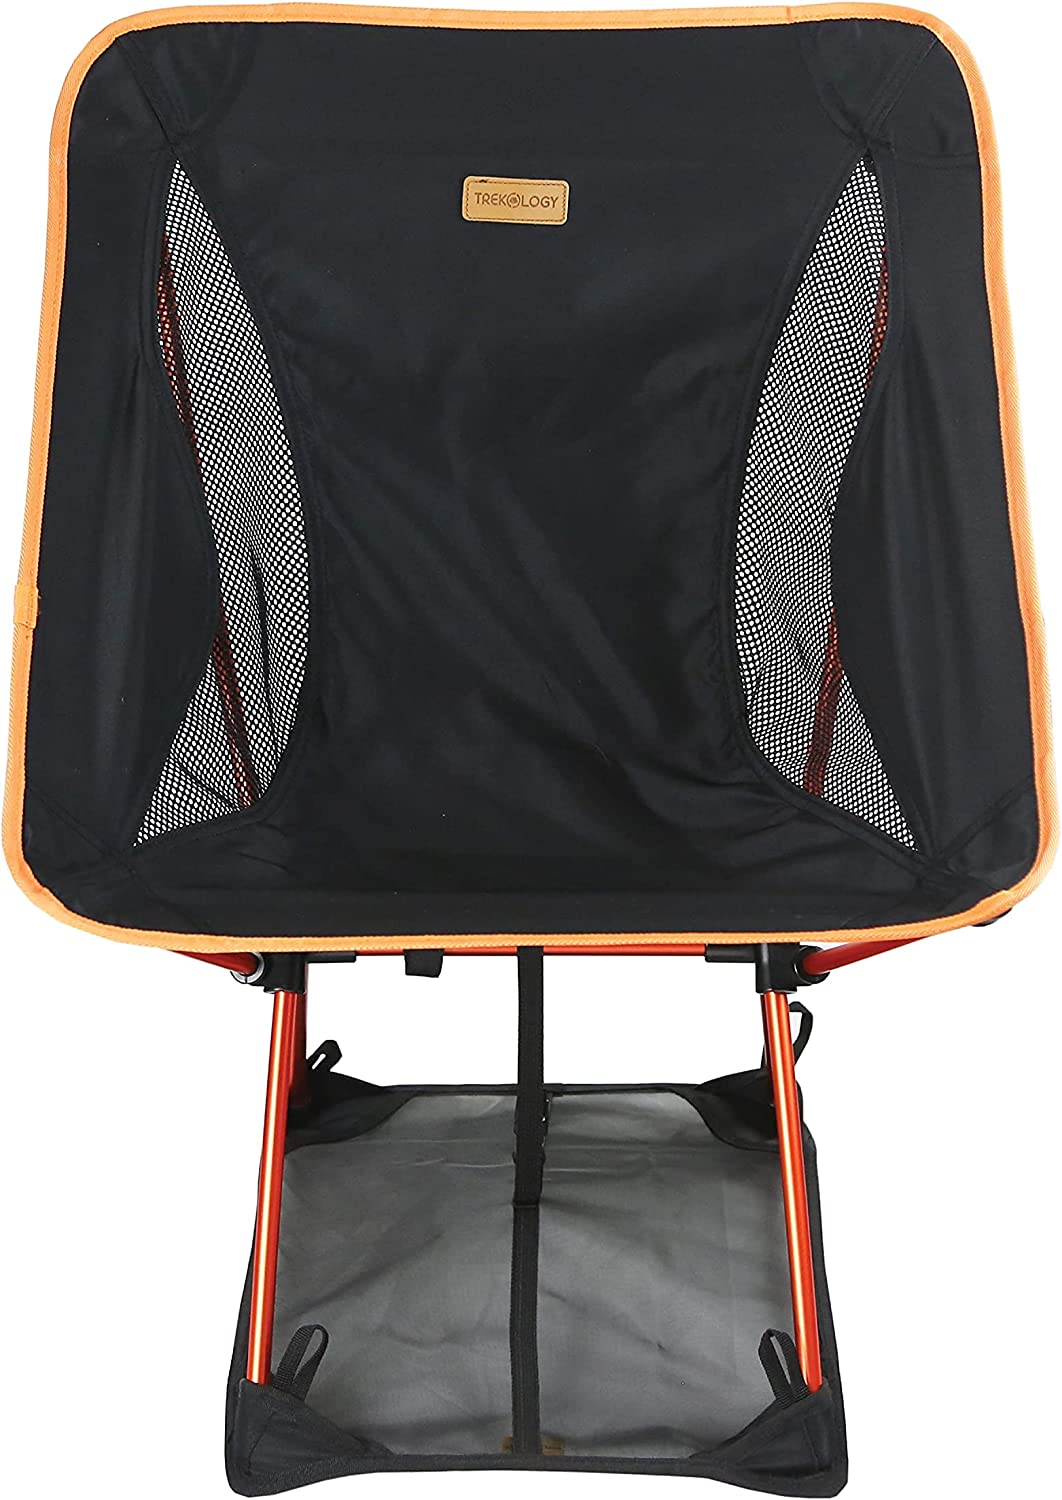 Backpacking Chair Portable Max 56% Ranking TOP2 OFF Camping Chairs Campin Folding